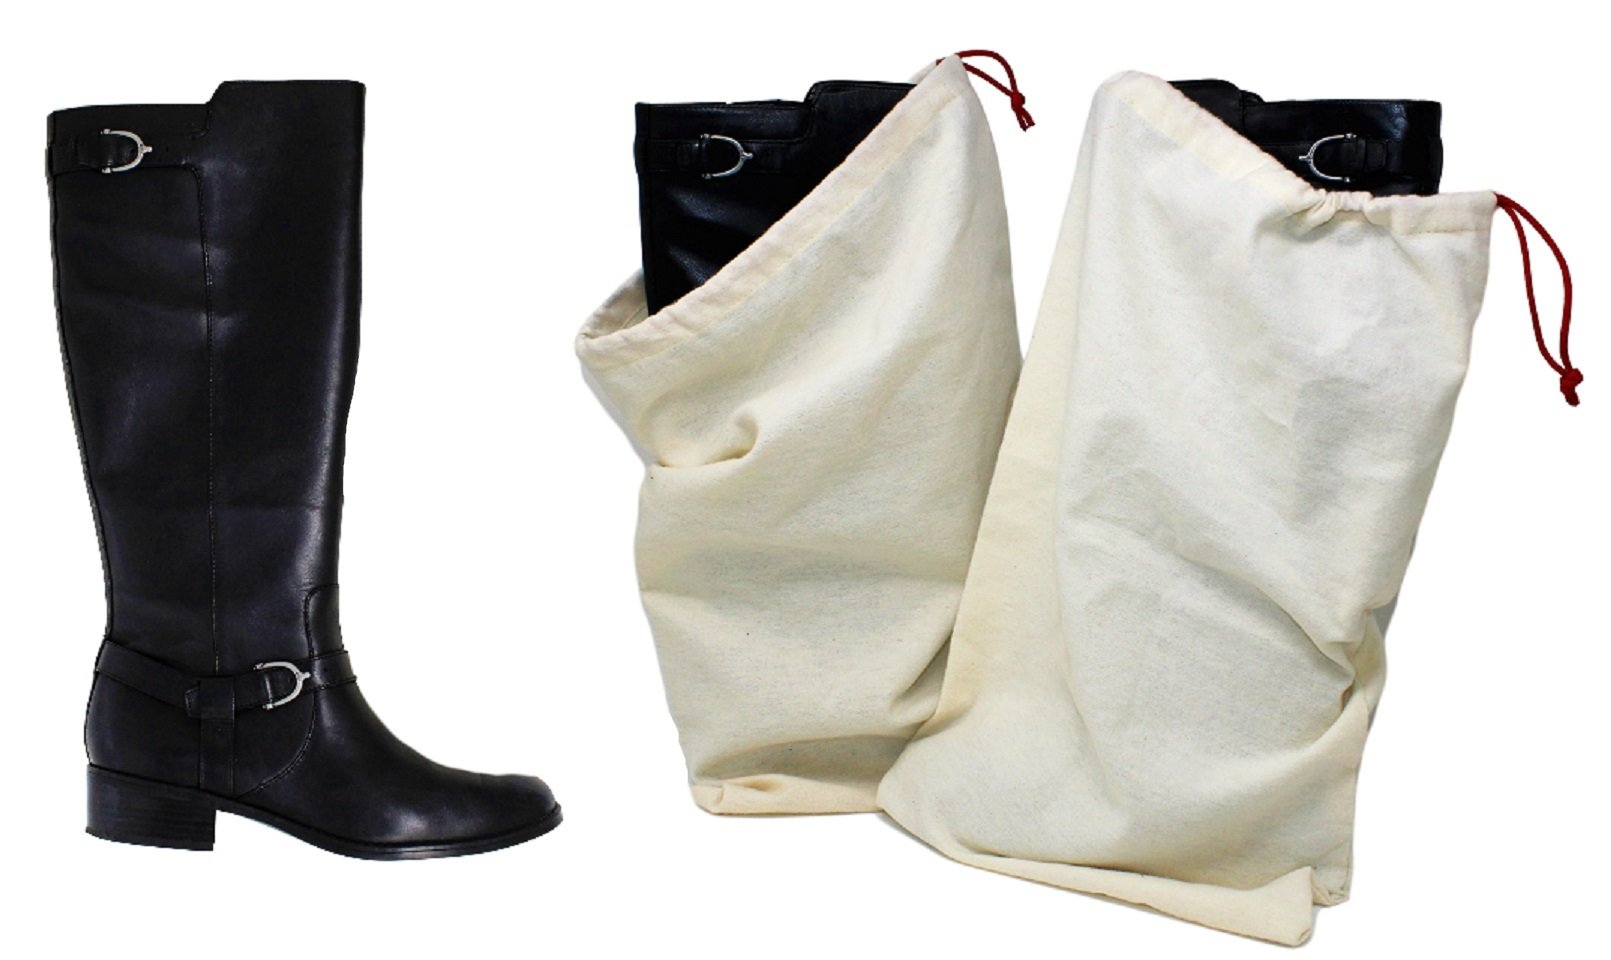 Earthwise Boot Shoe Bag 100% Cotton MADE IN THE USA with Drawstring for storing and protecting boots (Pack of 2)